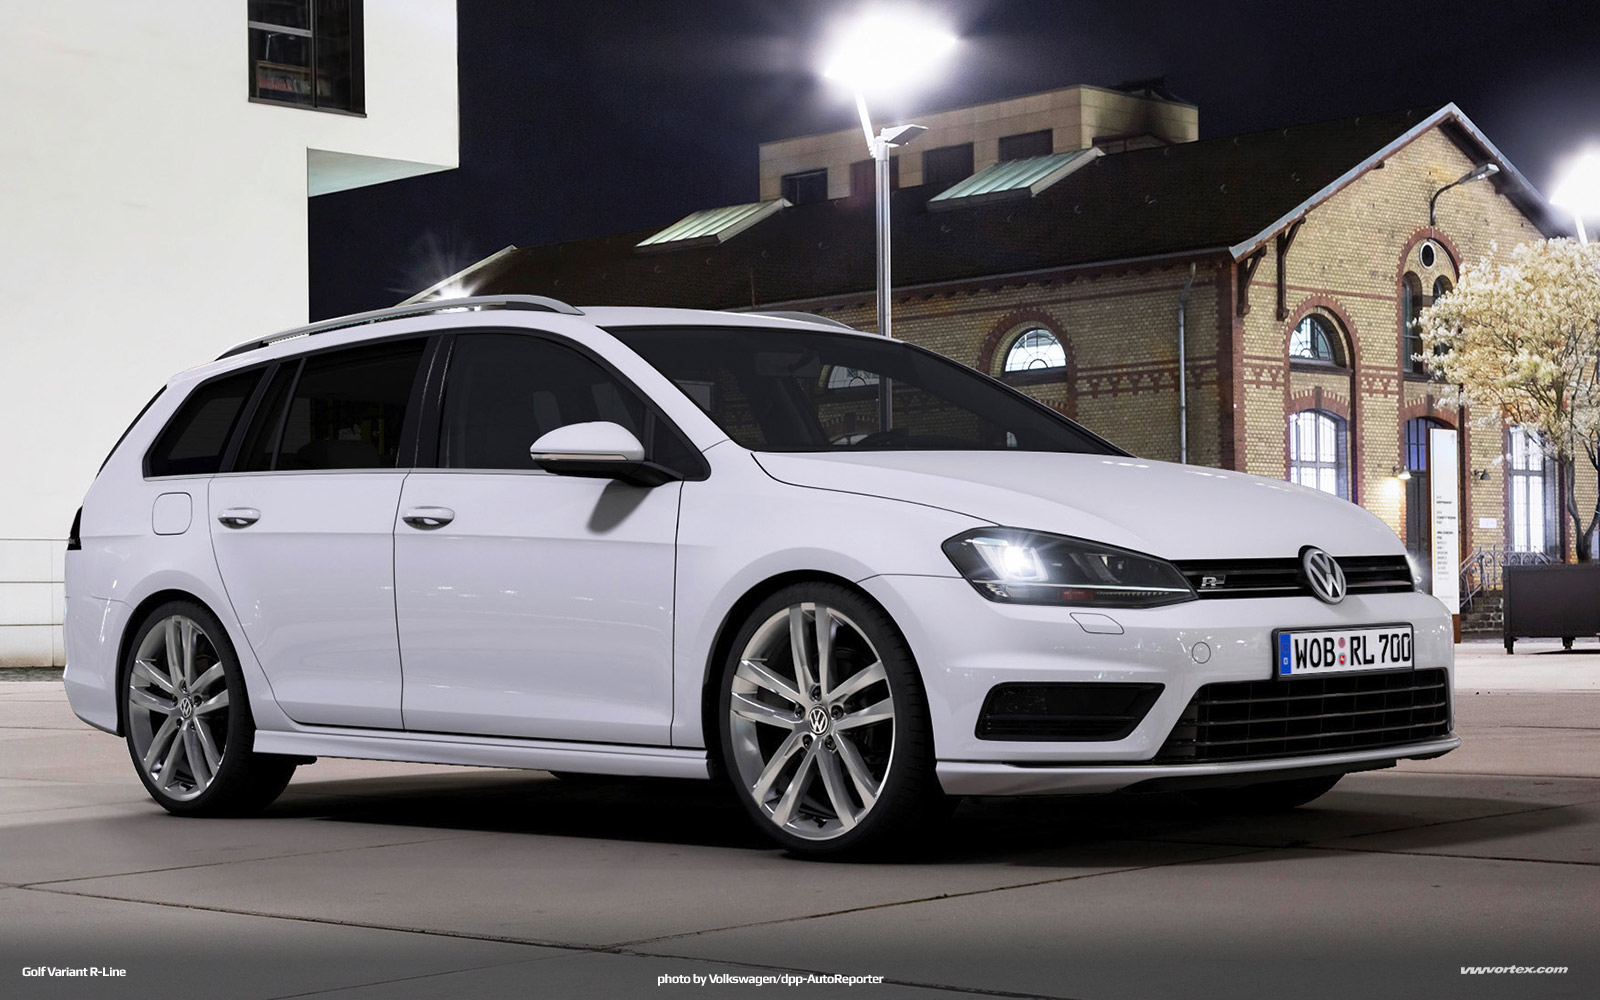 Volkswagen Golf R-Line package Photo Gallery - Autoblog